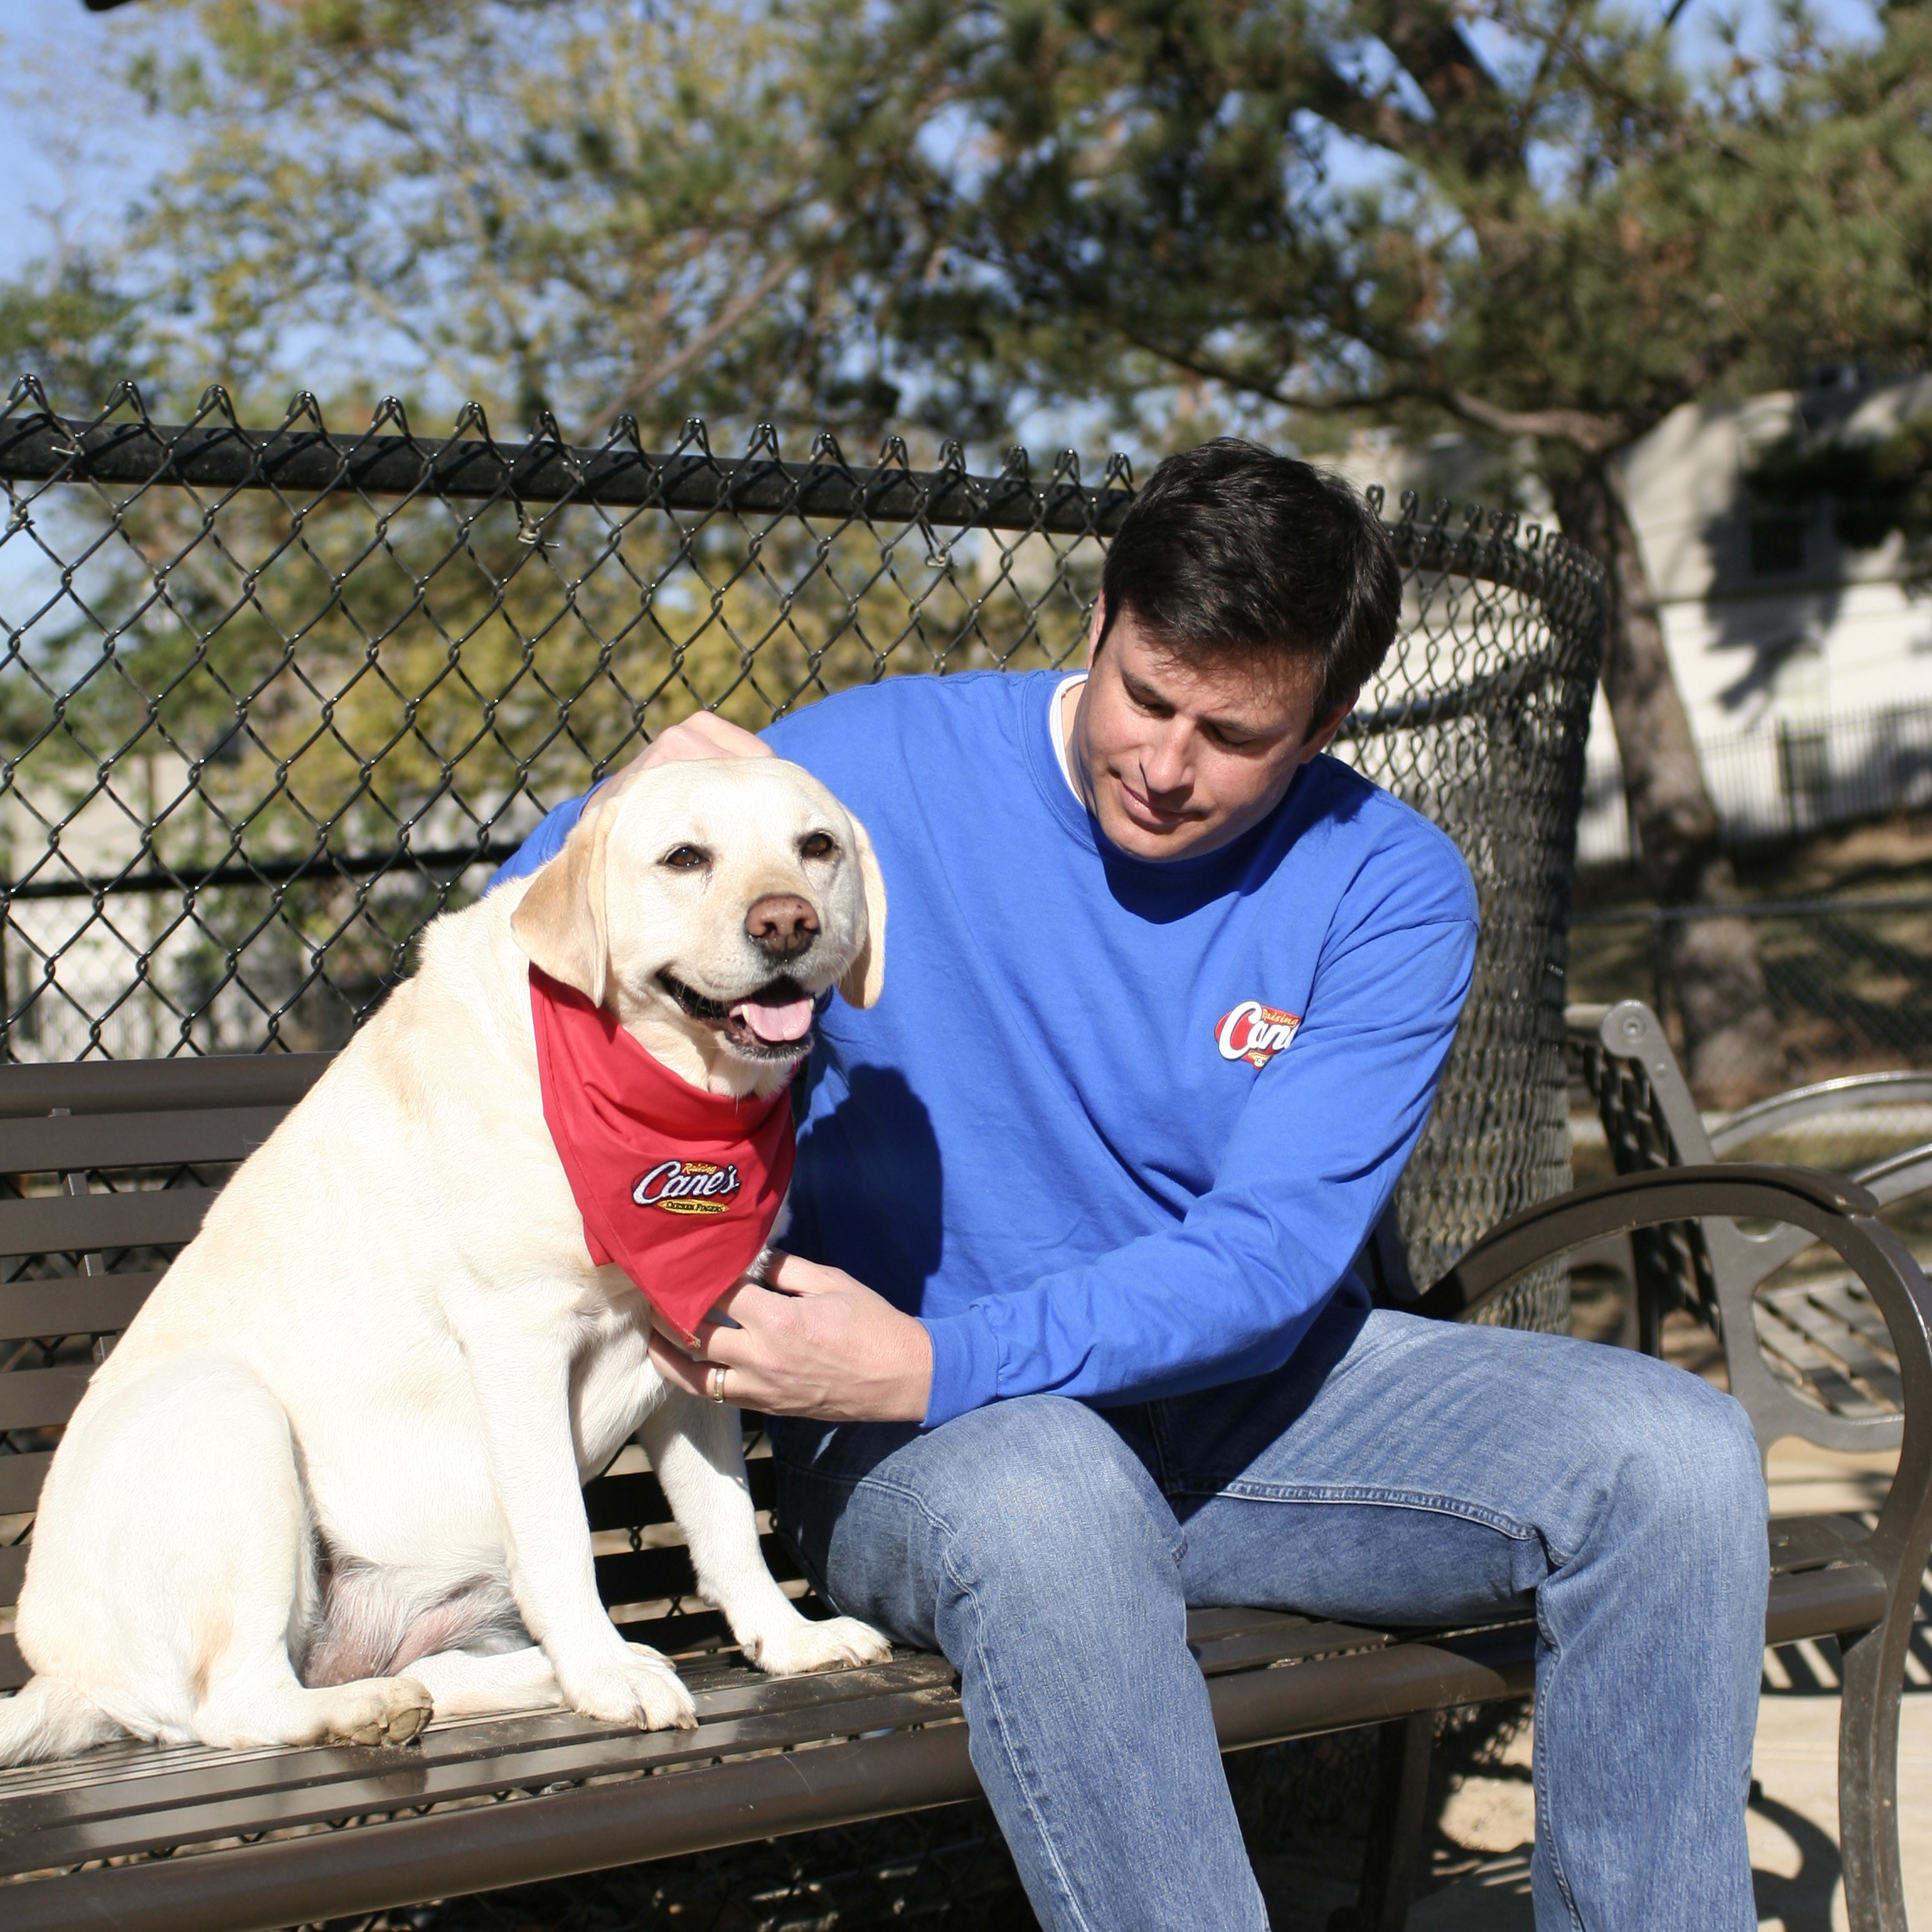 """""""Watching the Dog Park become a reality at City Park was a dream come true. I grew up using BREC parks, and now my family and others will be able to enjoy an amazing experience with man's best friend.""""      -Todd Graves       BREC Foundation Board Member"""